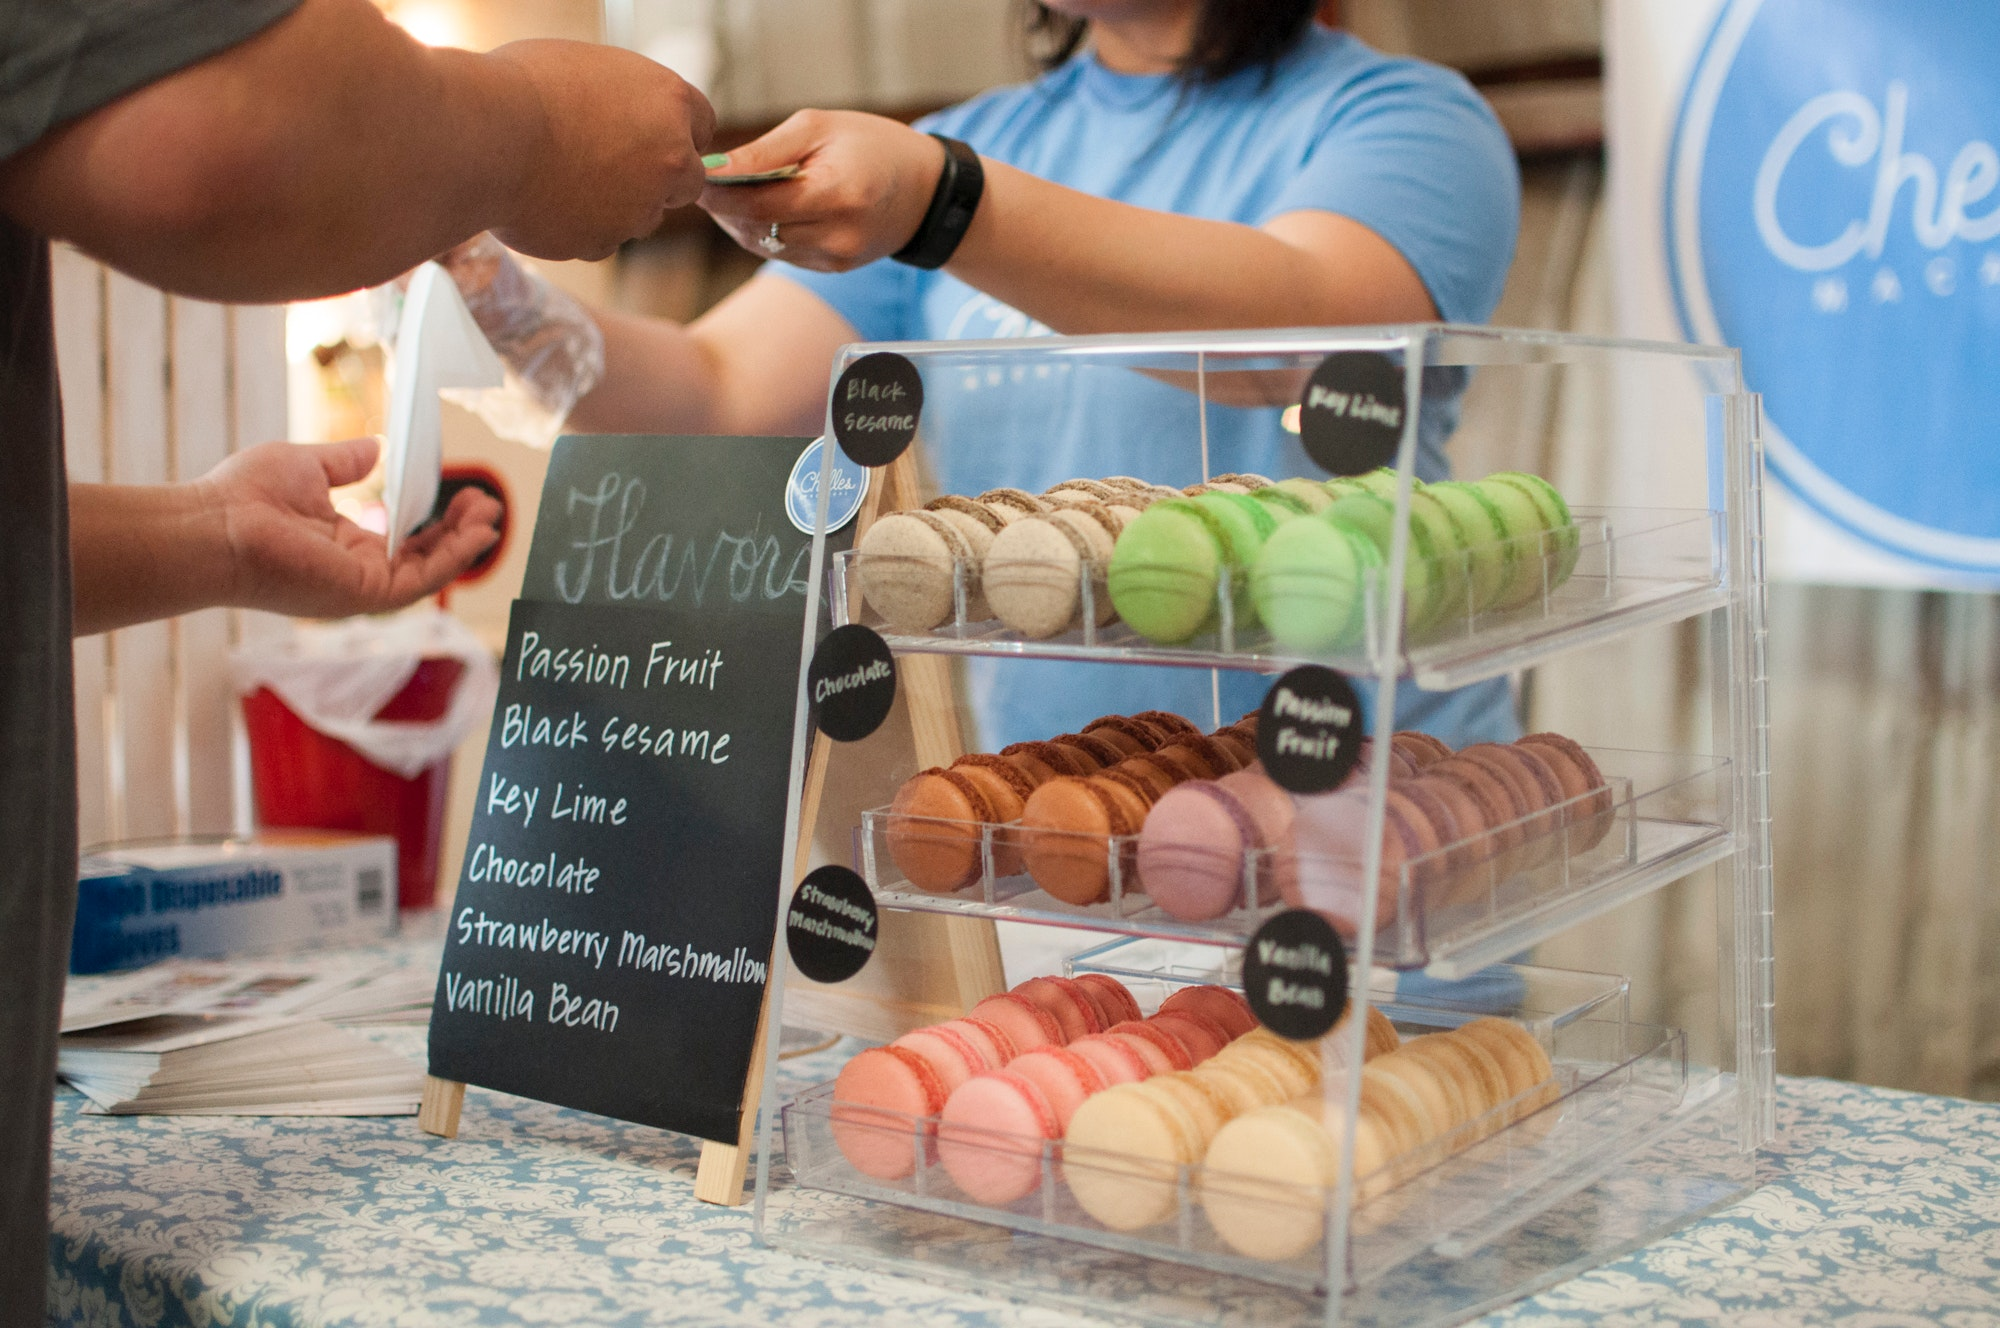 E-learning can increase customer satisfaction - for example, this macaroon shop noticed an increase in sales after their employees did a customer service course.